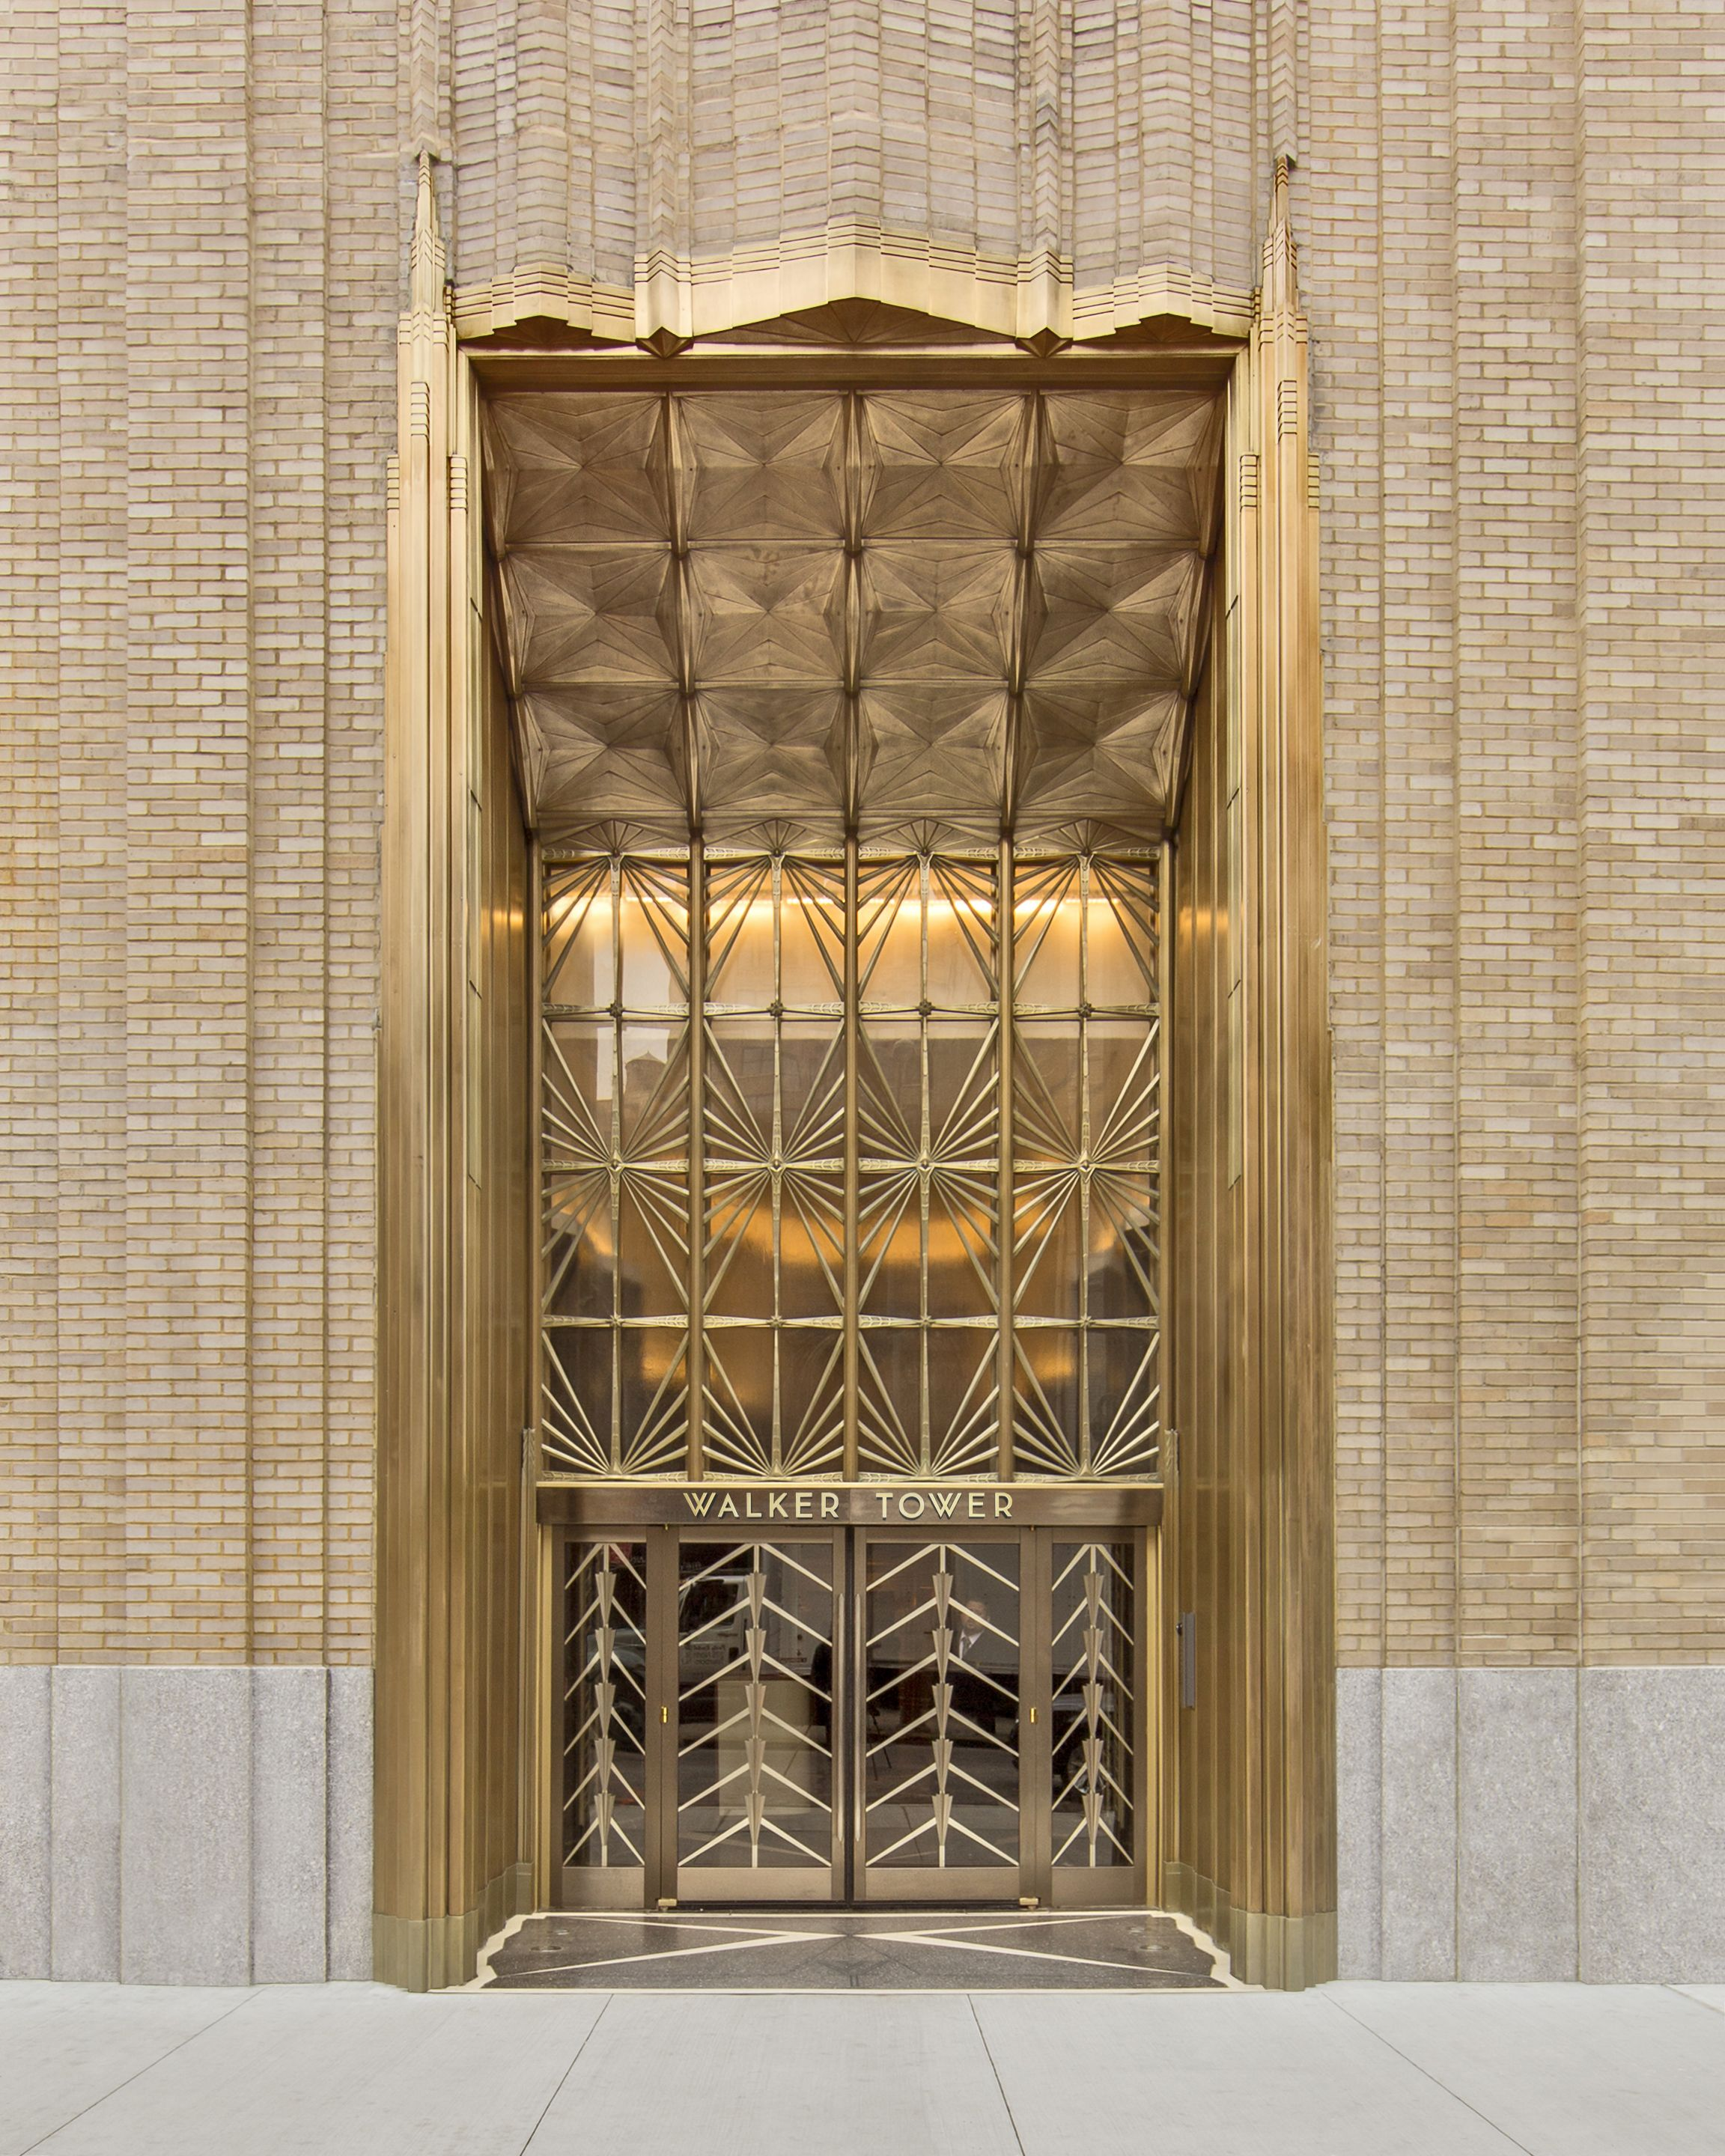 Deco New York But Art Deco New York City Entrance Walker Tower 212